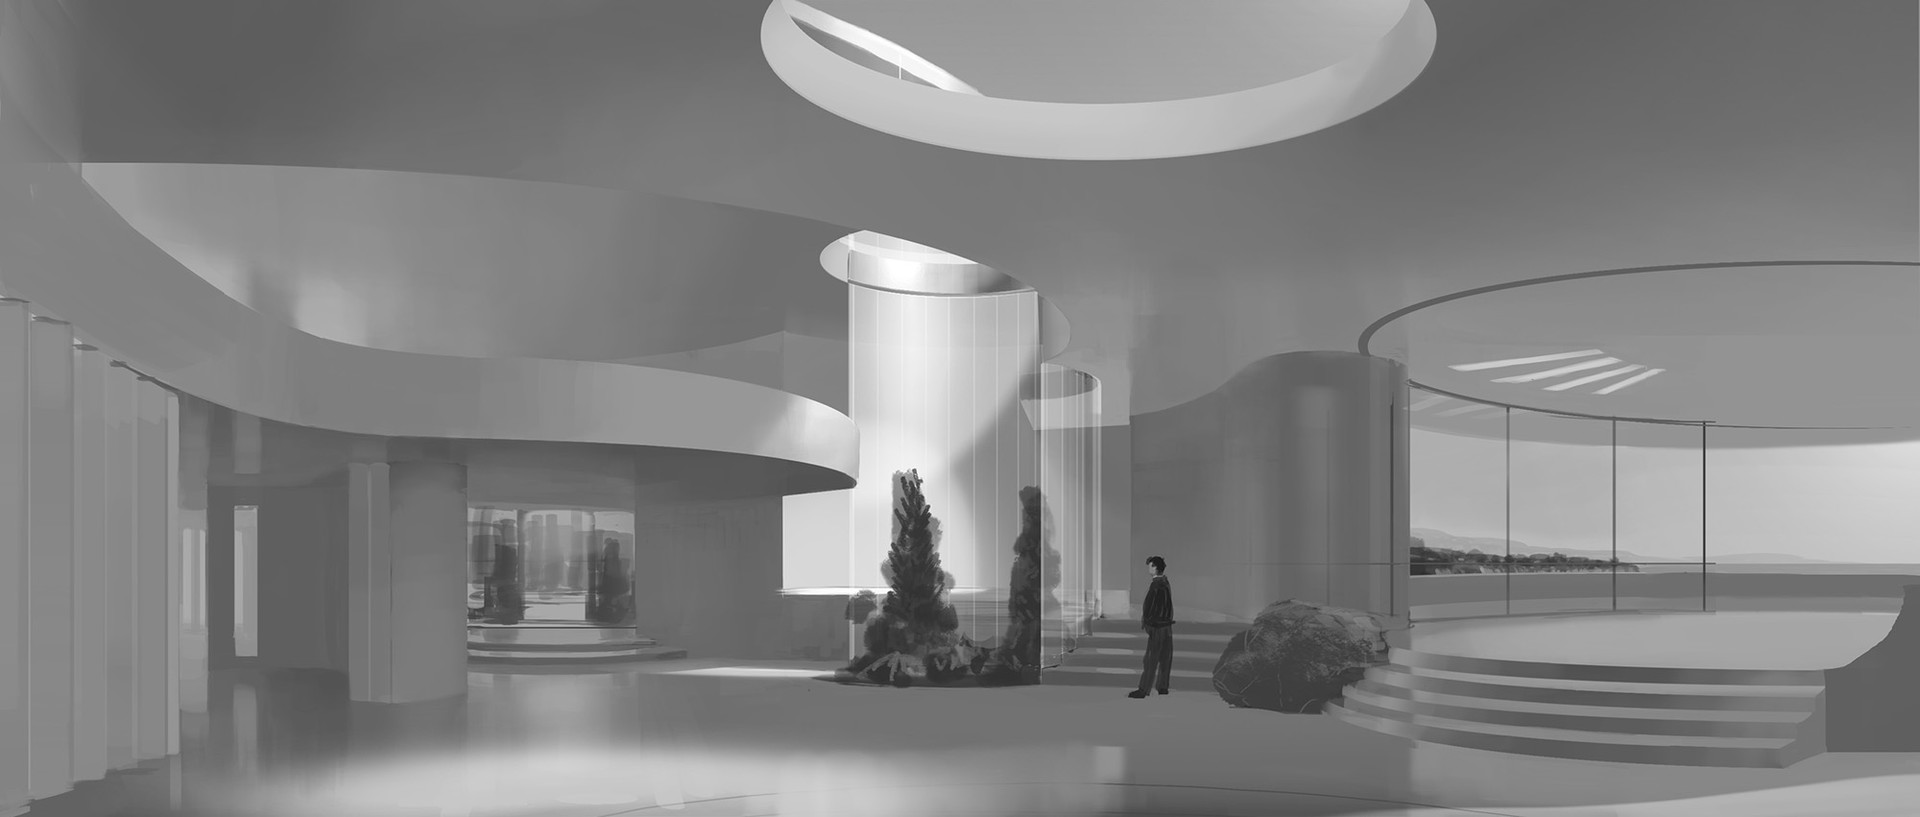 Early work-in-progress to show how I work out architectural forms with values and lighting.